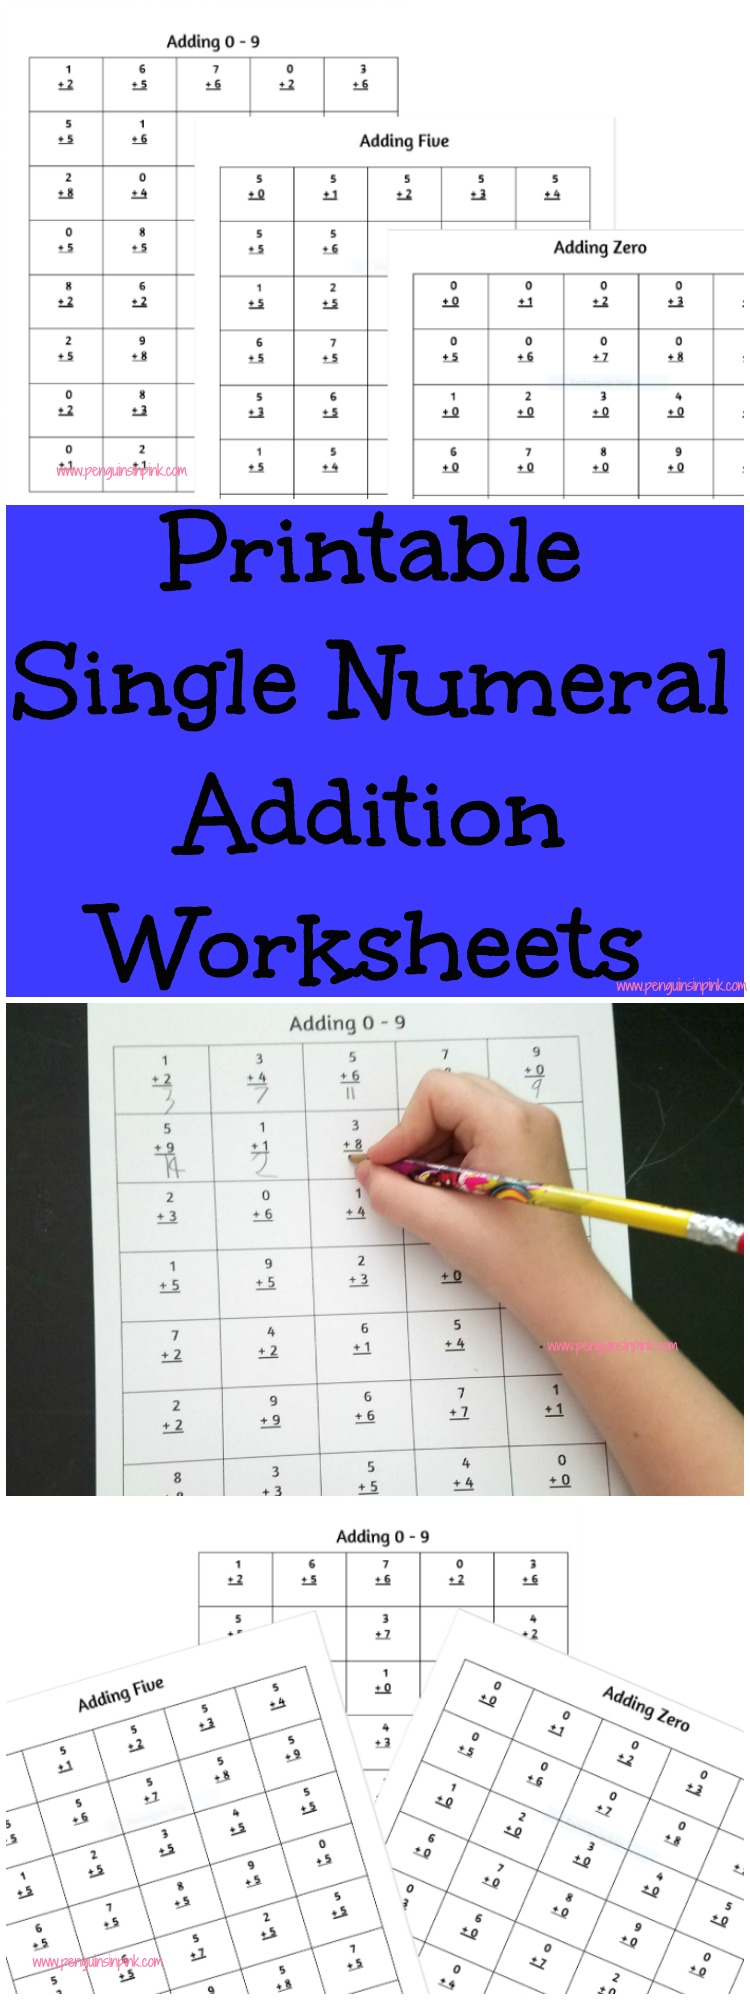 These FREE printable single numeral addition worksheets contain 40 problems per page with one page for numbers 0-9. There are also 4 additional sheets that contain a mixture of all the numbers 0-9.